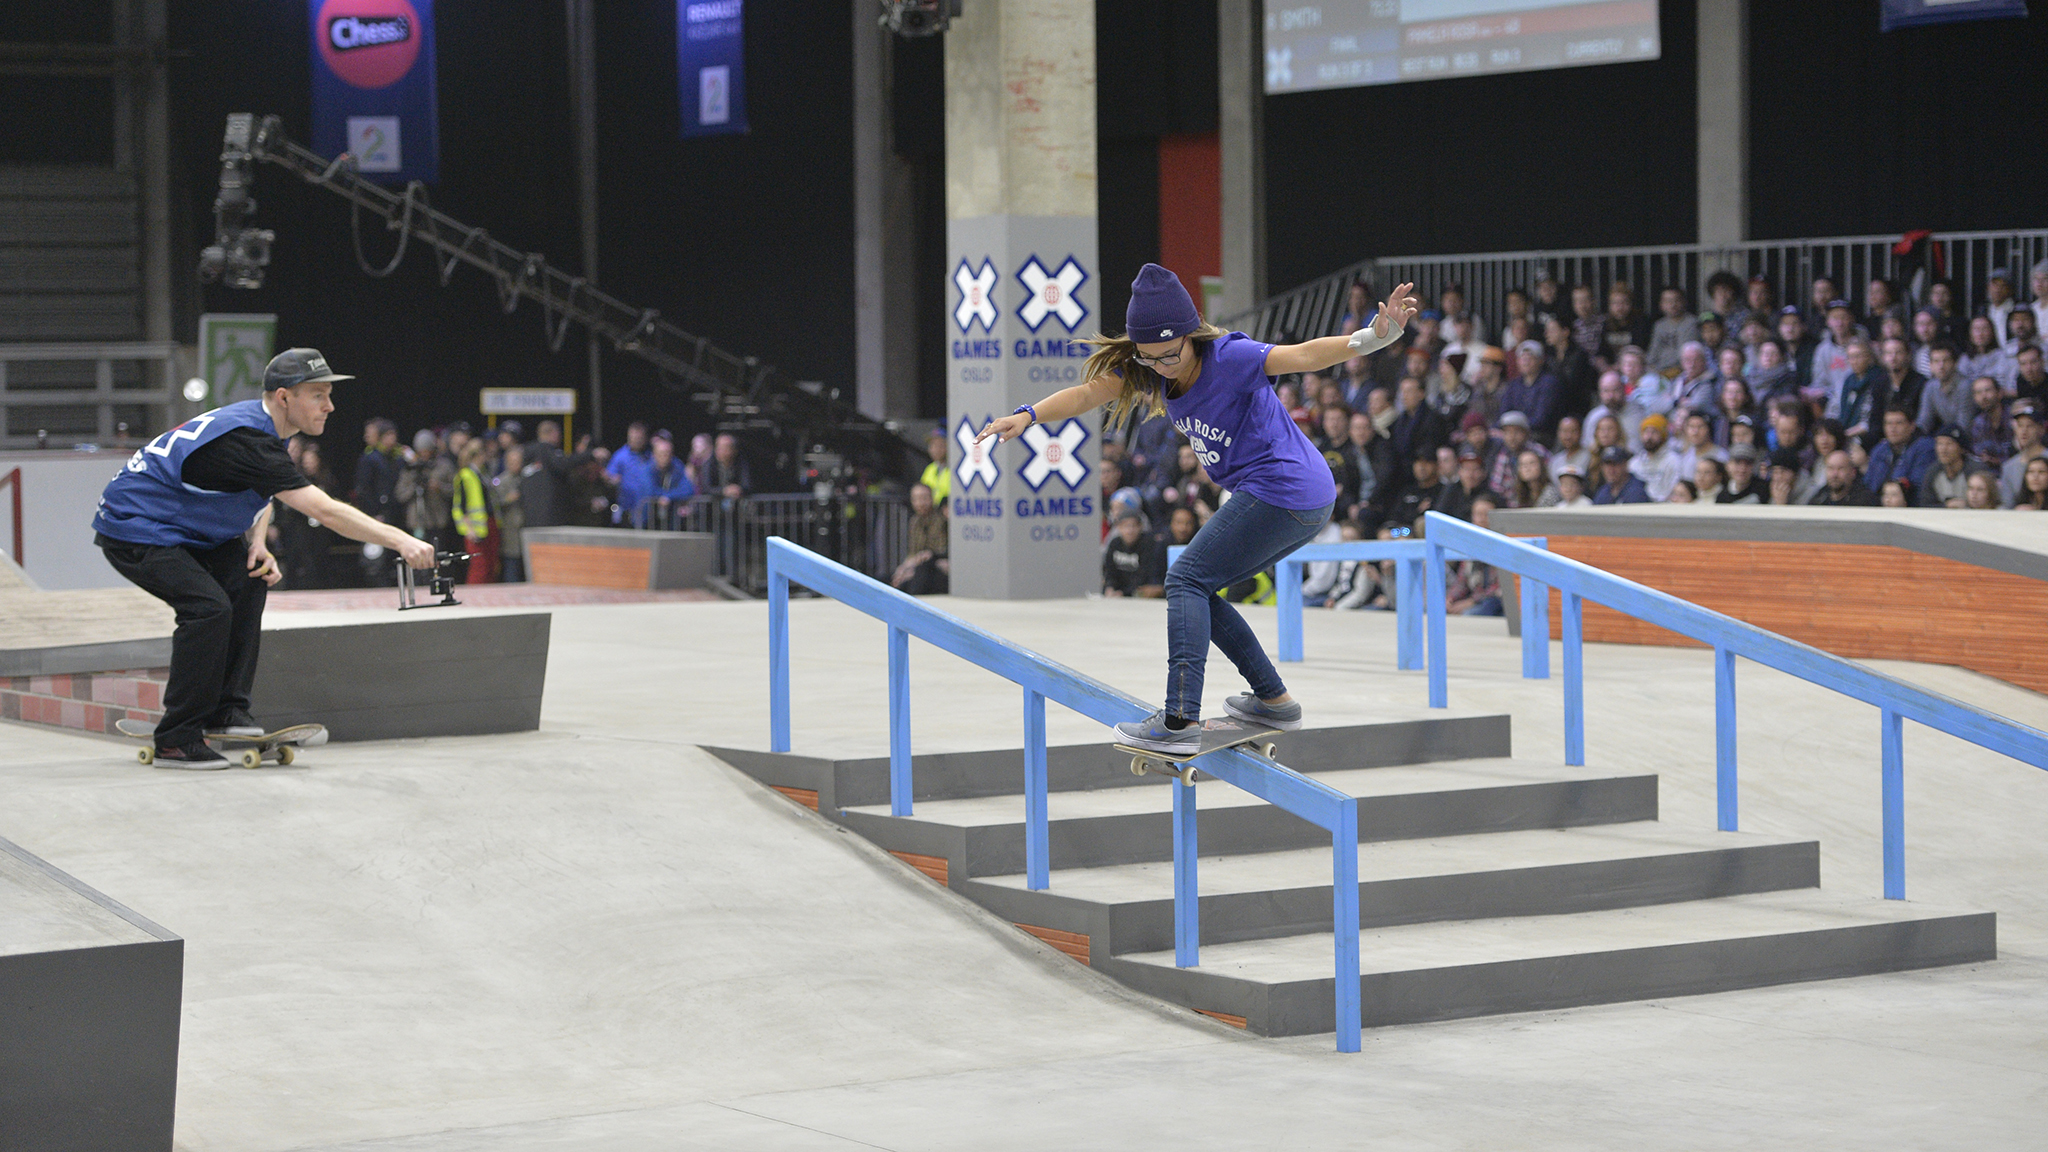 Pamela Rosa boardslides her way to gold at X Games Oslo 2016.